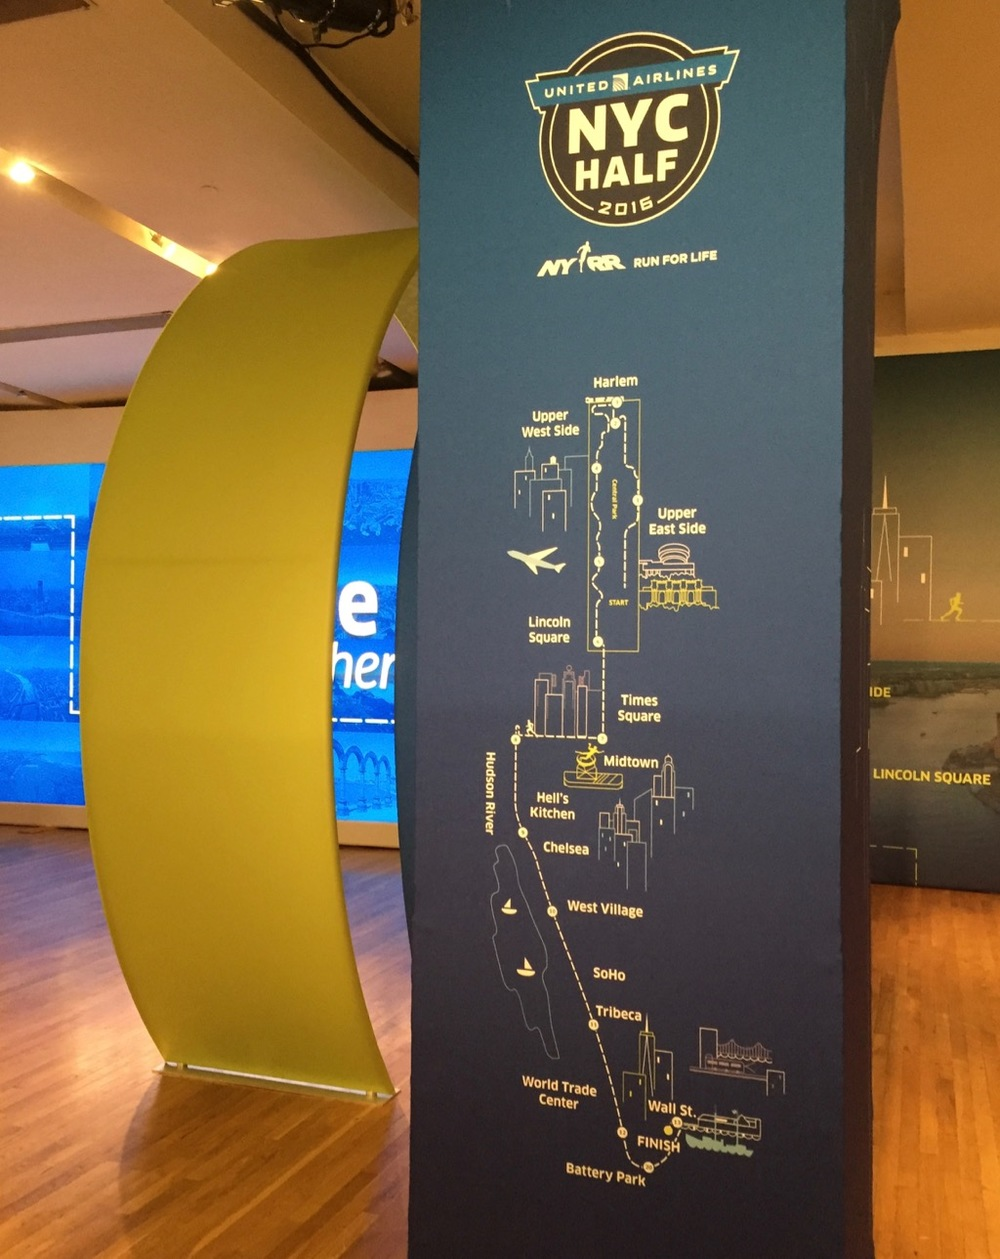 A map of the race course, in the Race Expo.